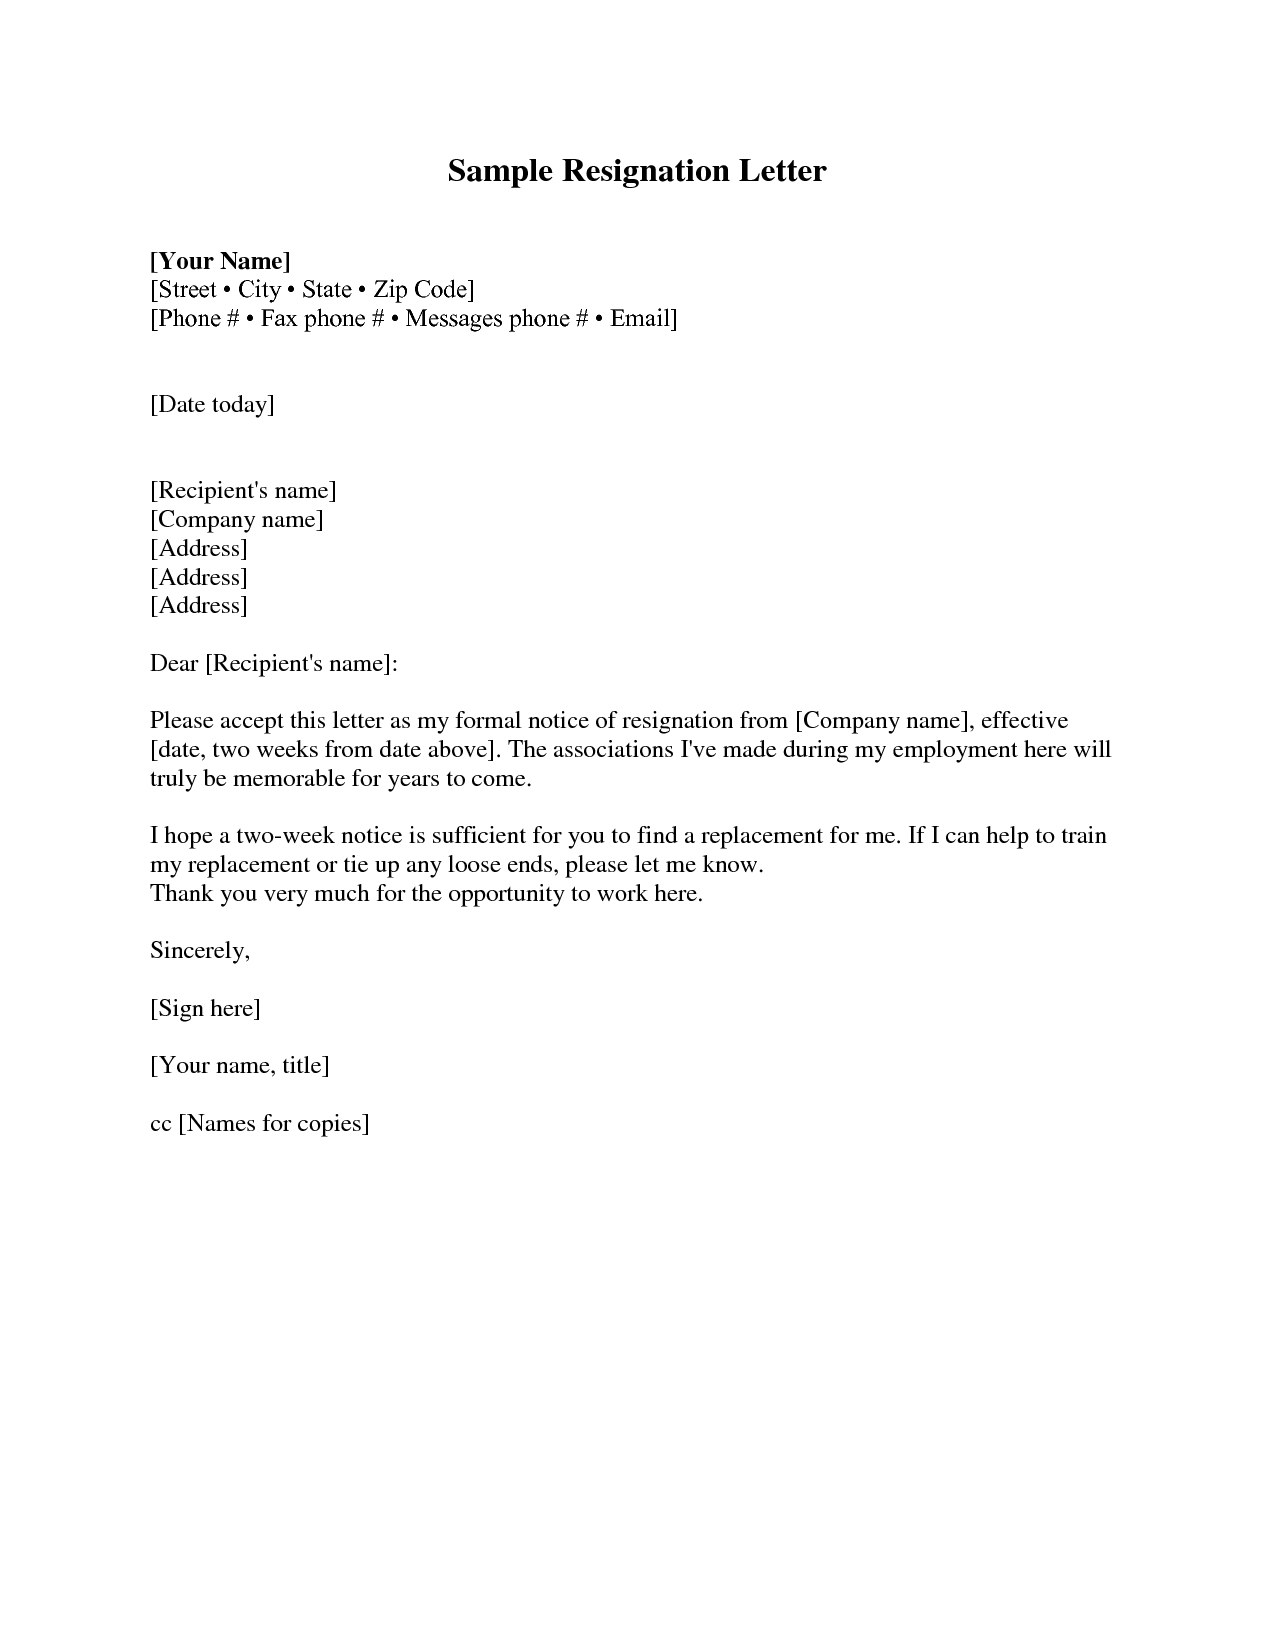 Assisted Living 30 Day Notice Letter Template - Resignation Letter Sample 2 Weeks Notice Free2img